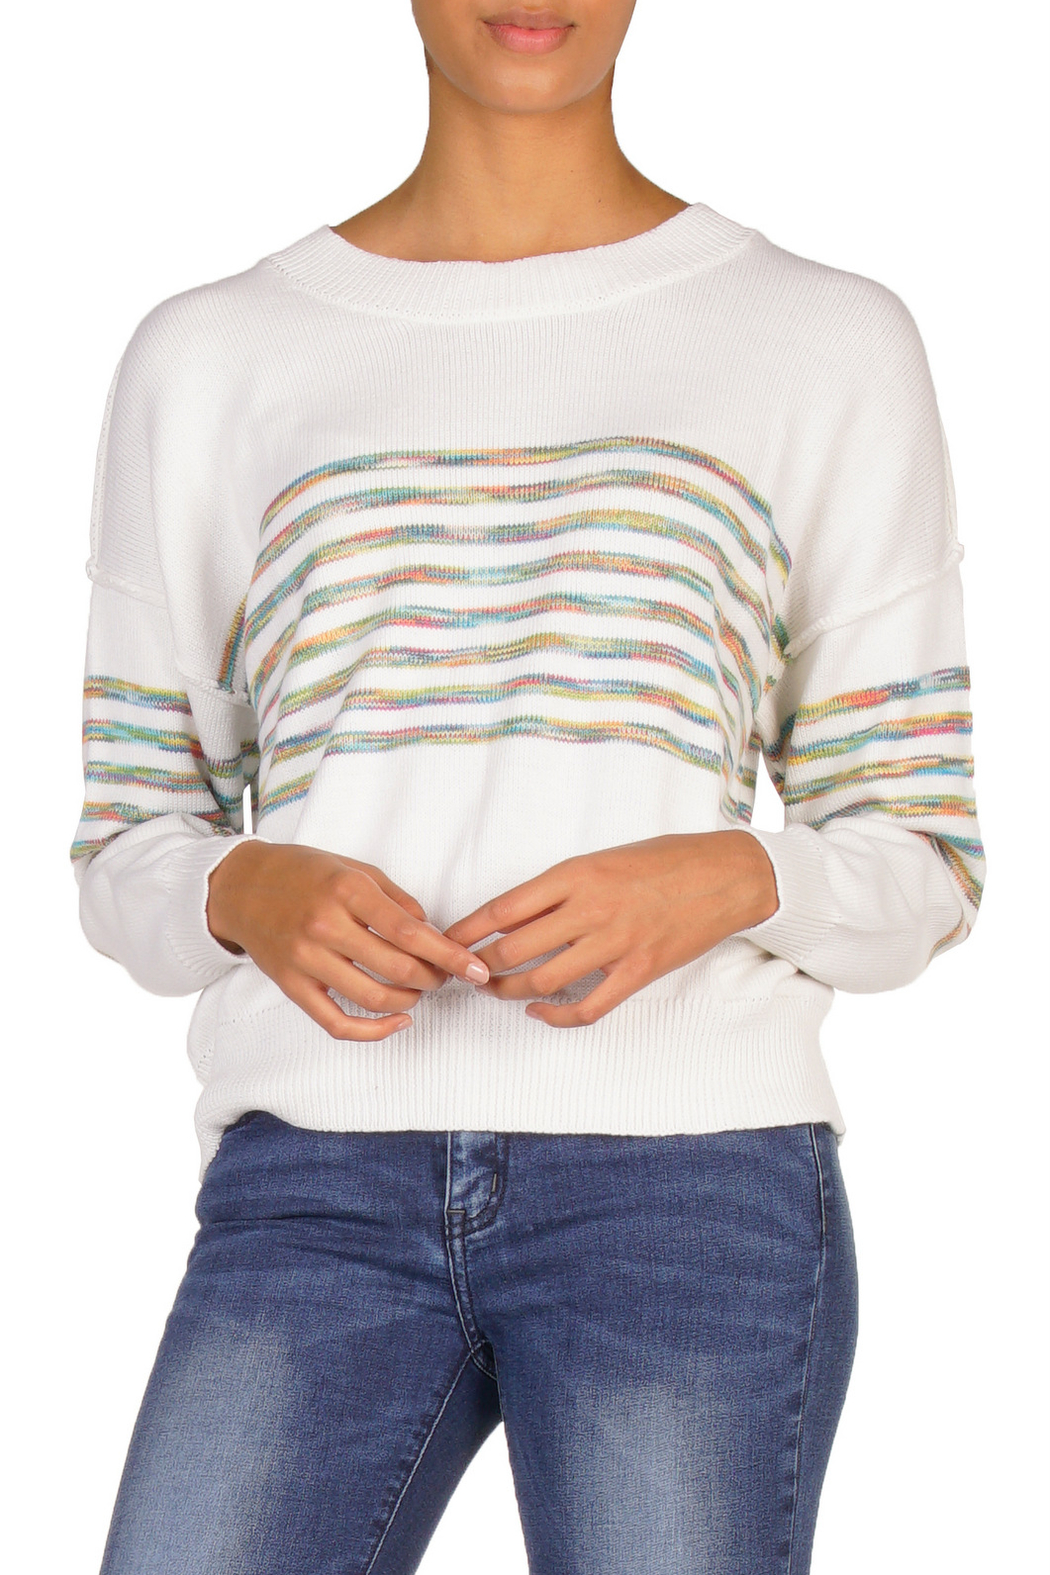 Elan Rainbow Stripe Sweater - Main Image